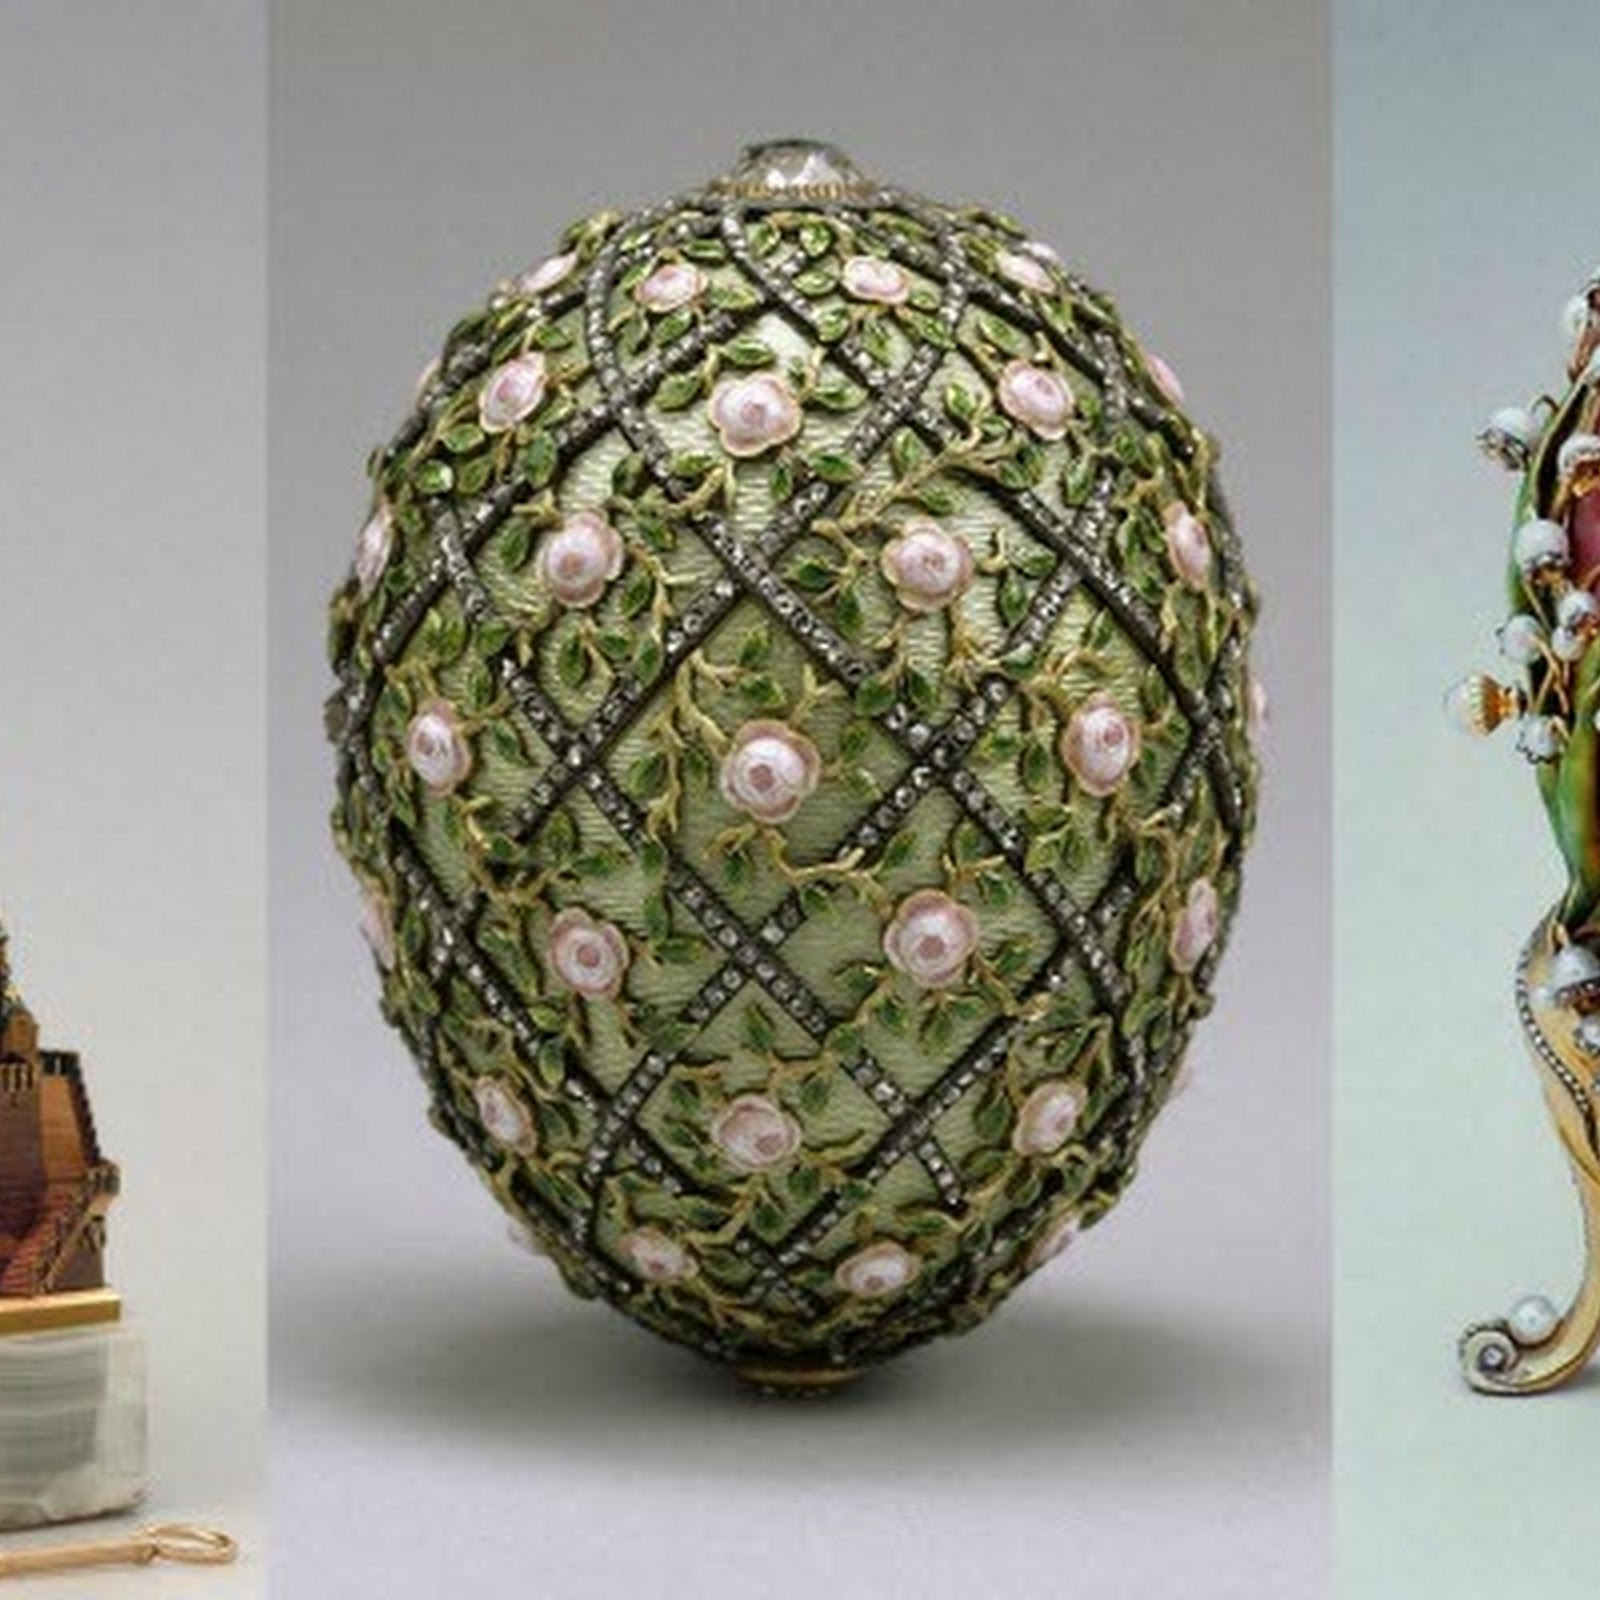 The Fabulous Fabergé Eggs of The Russian Imperial Family